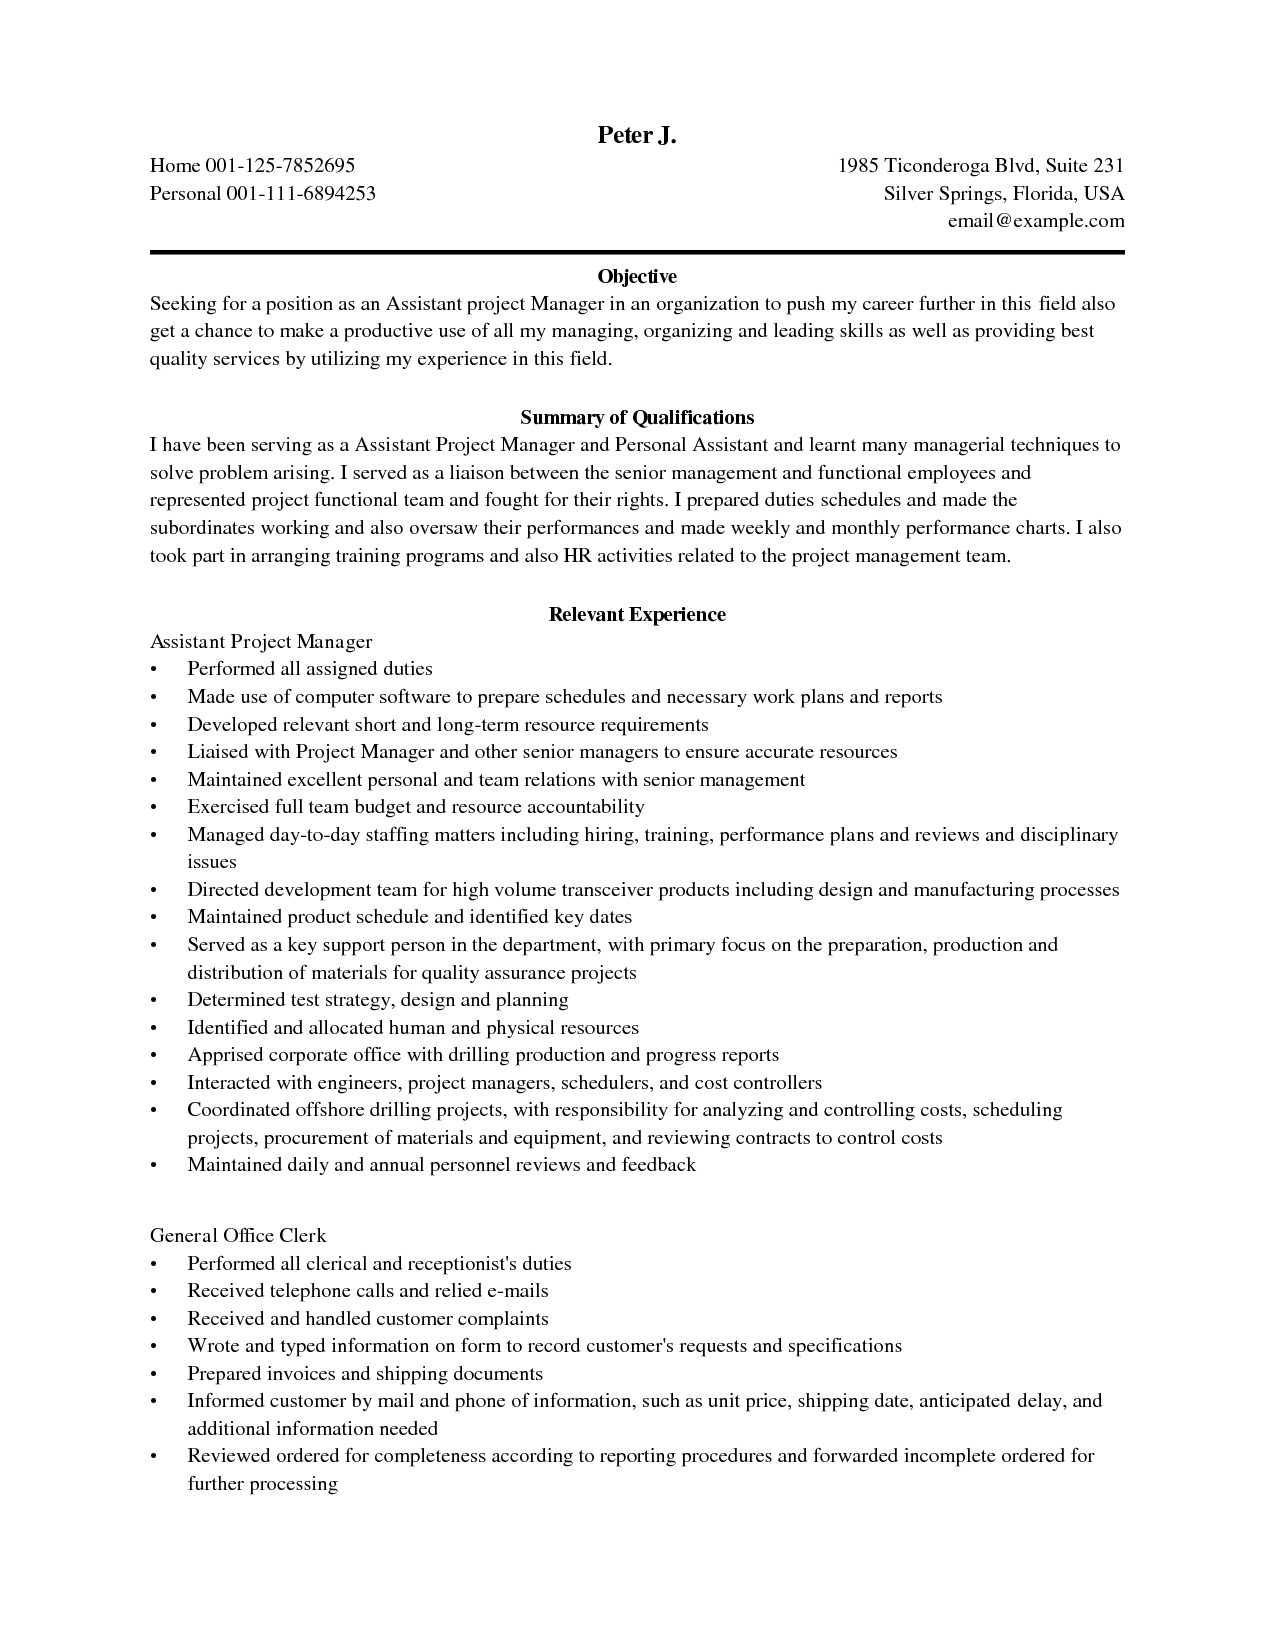 career objective examples information technology printable resume job large size - Resume Objective For Project Manager